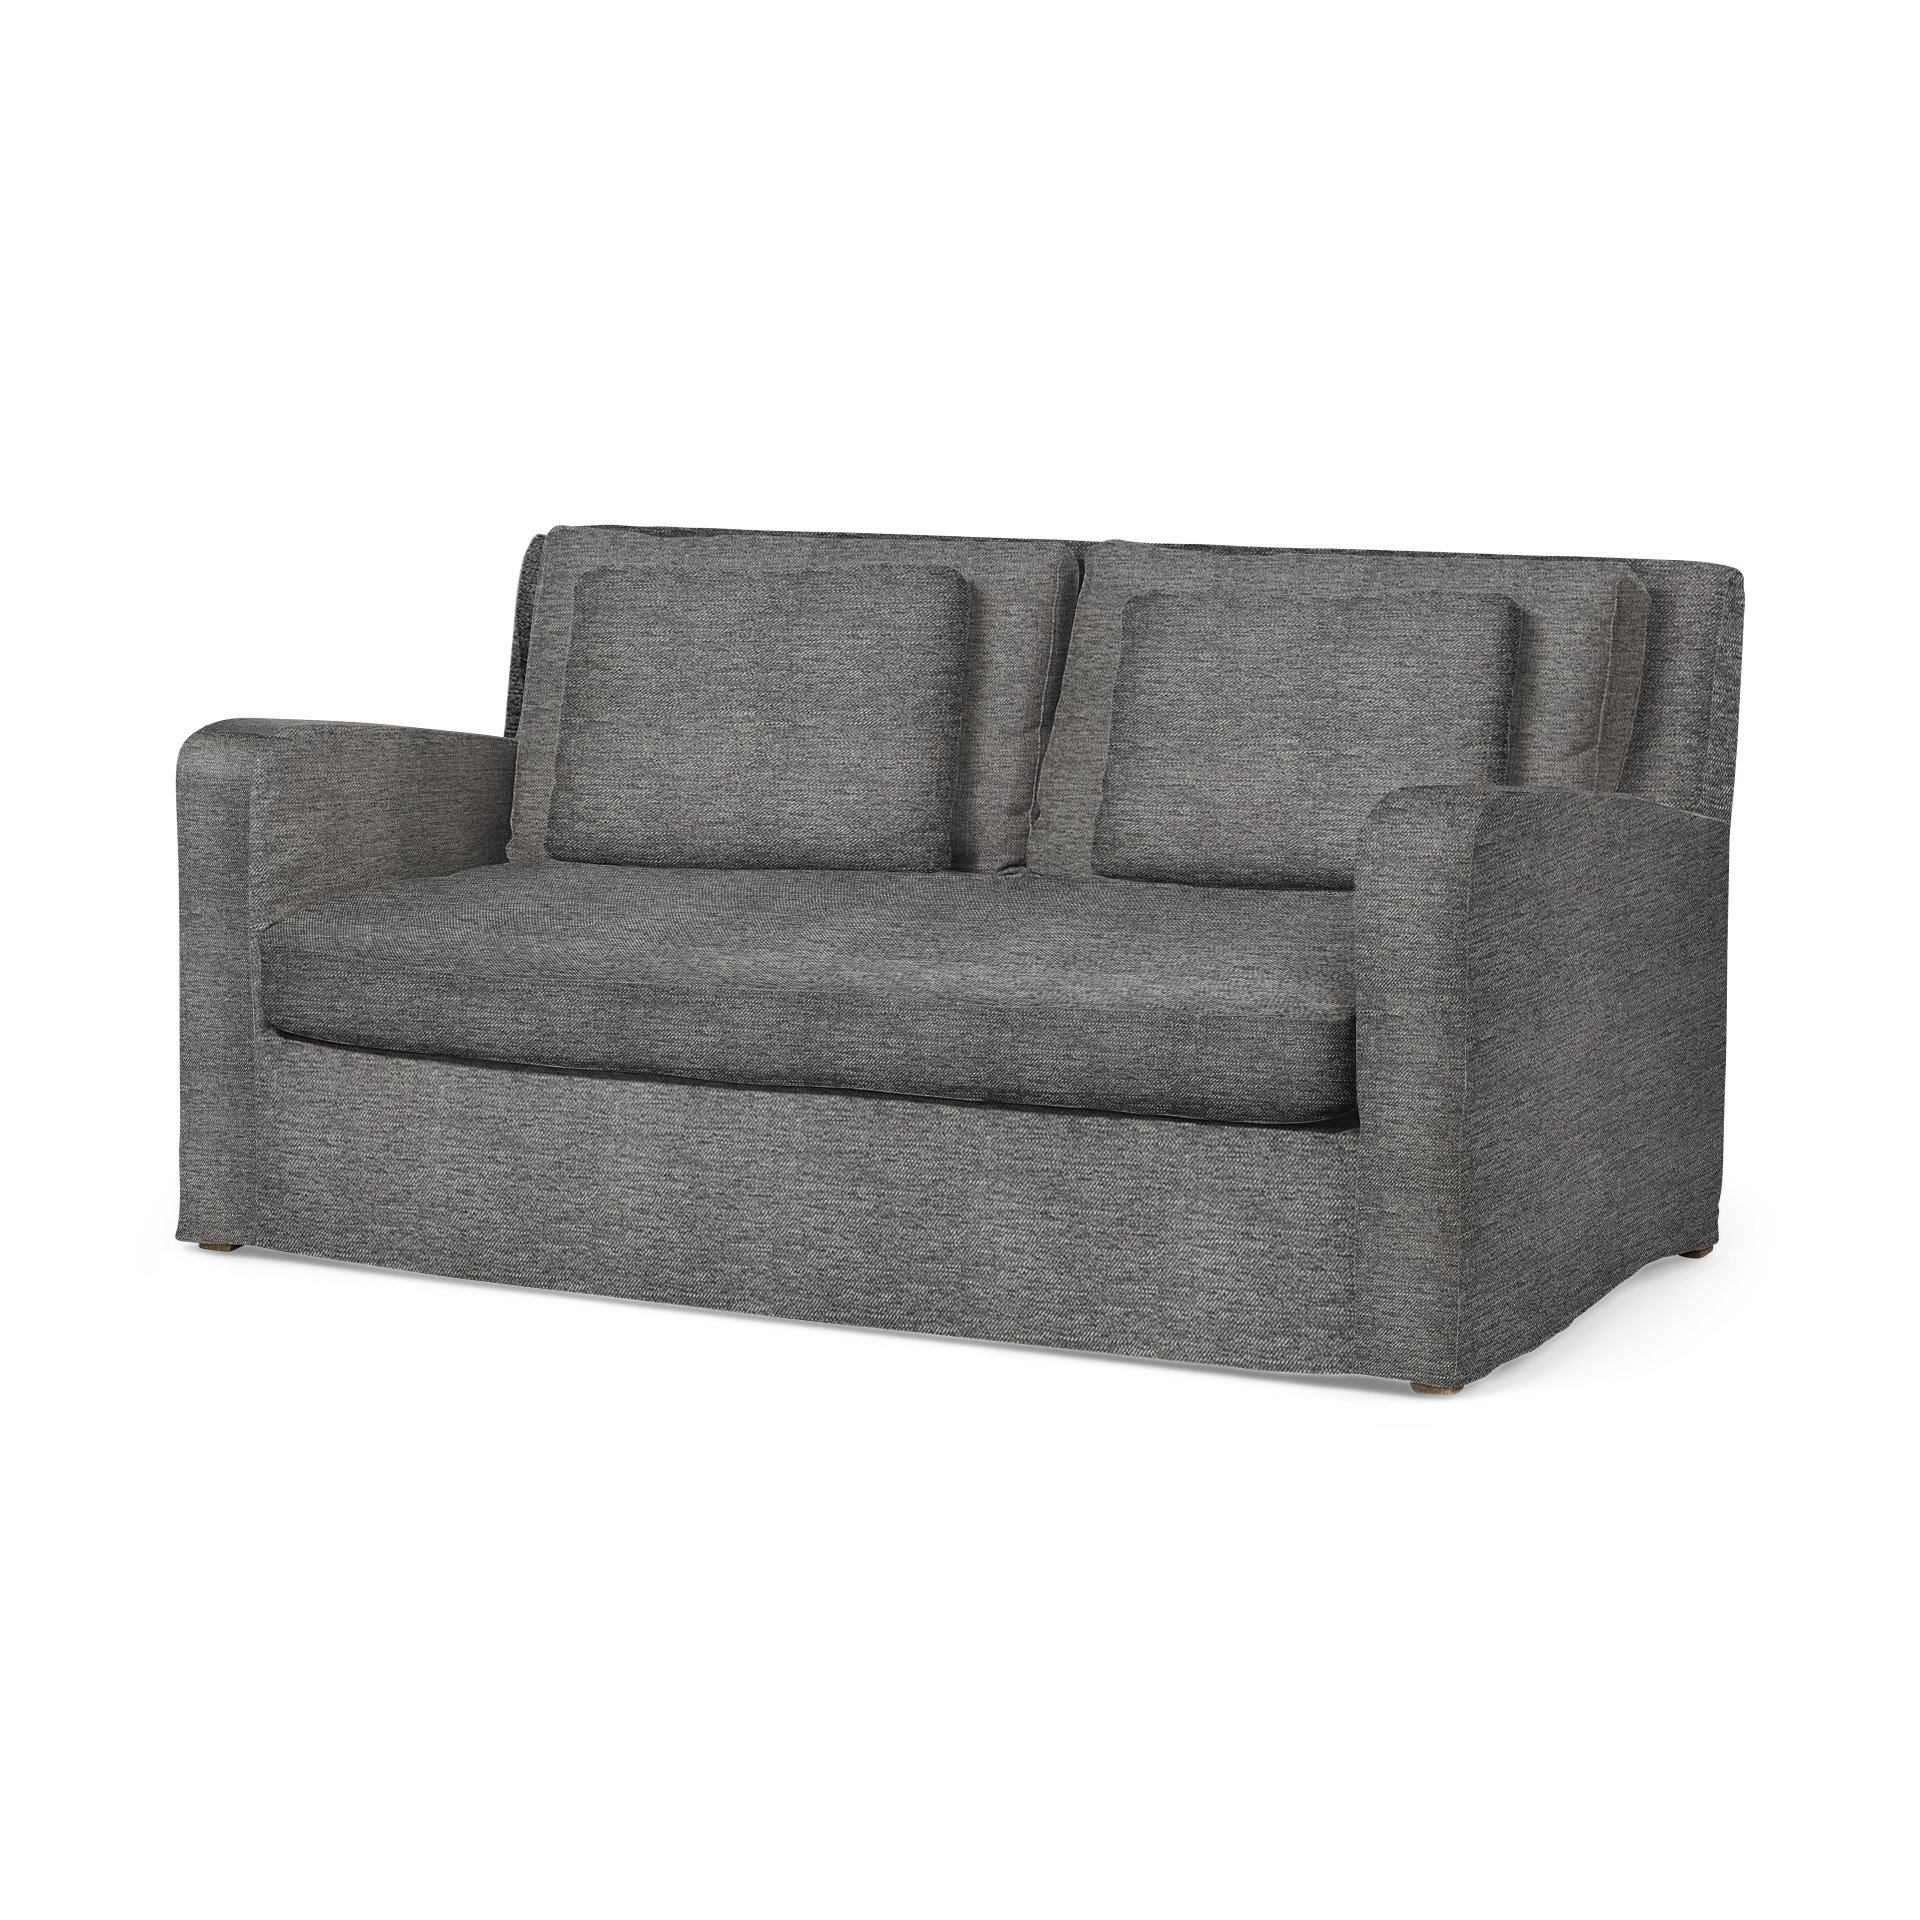 Daniel Love Seat Canada S Boss Leather Sofas And Furniture